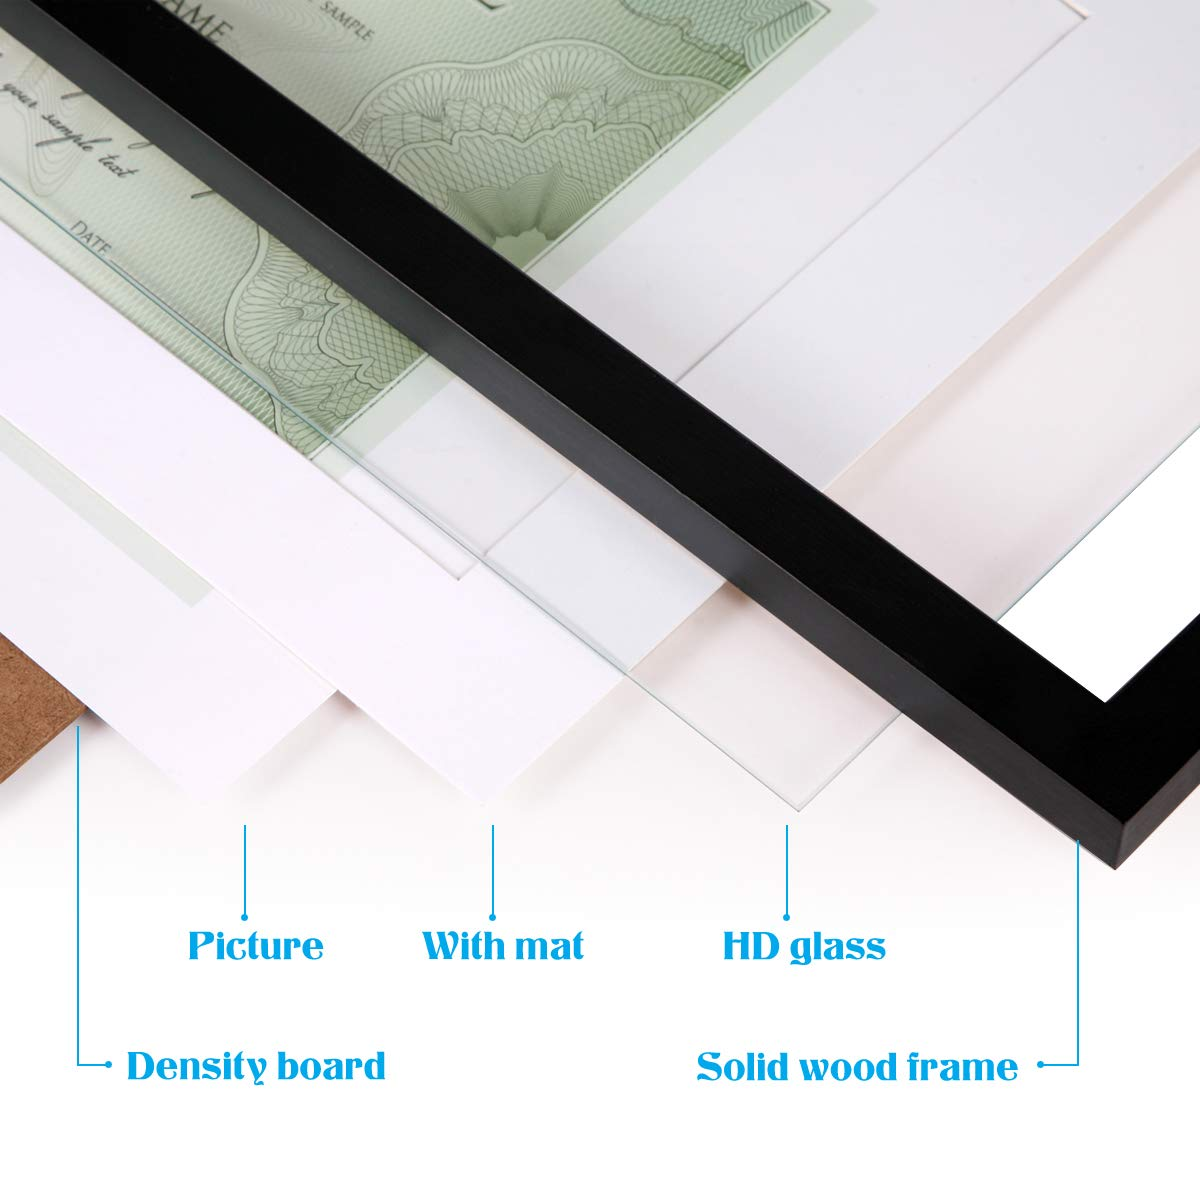 JAYONG 11 x 14 Picture Frames Made of Solid Wood and High Definition Glass Display Document Frame 8.5x11 with Mat or 11x14 Without Mat for Wall mounting Photo Frame Black 1 Pack